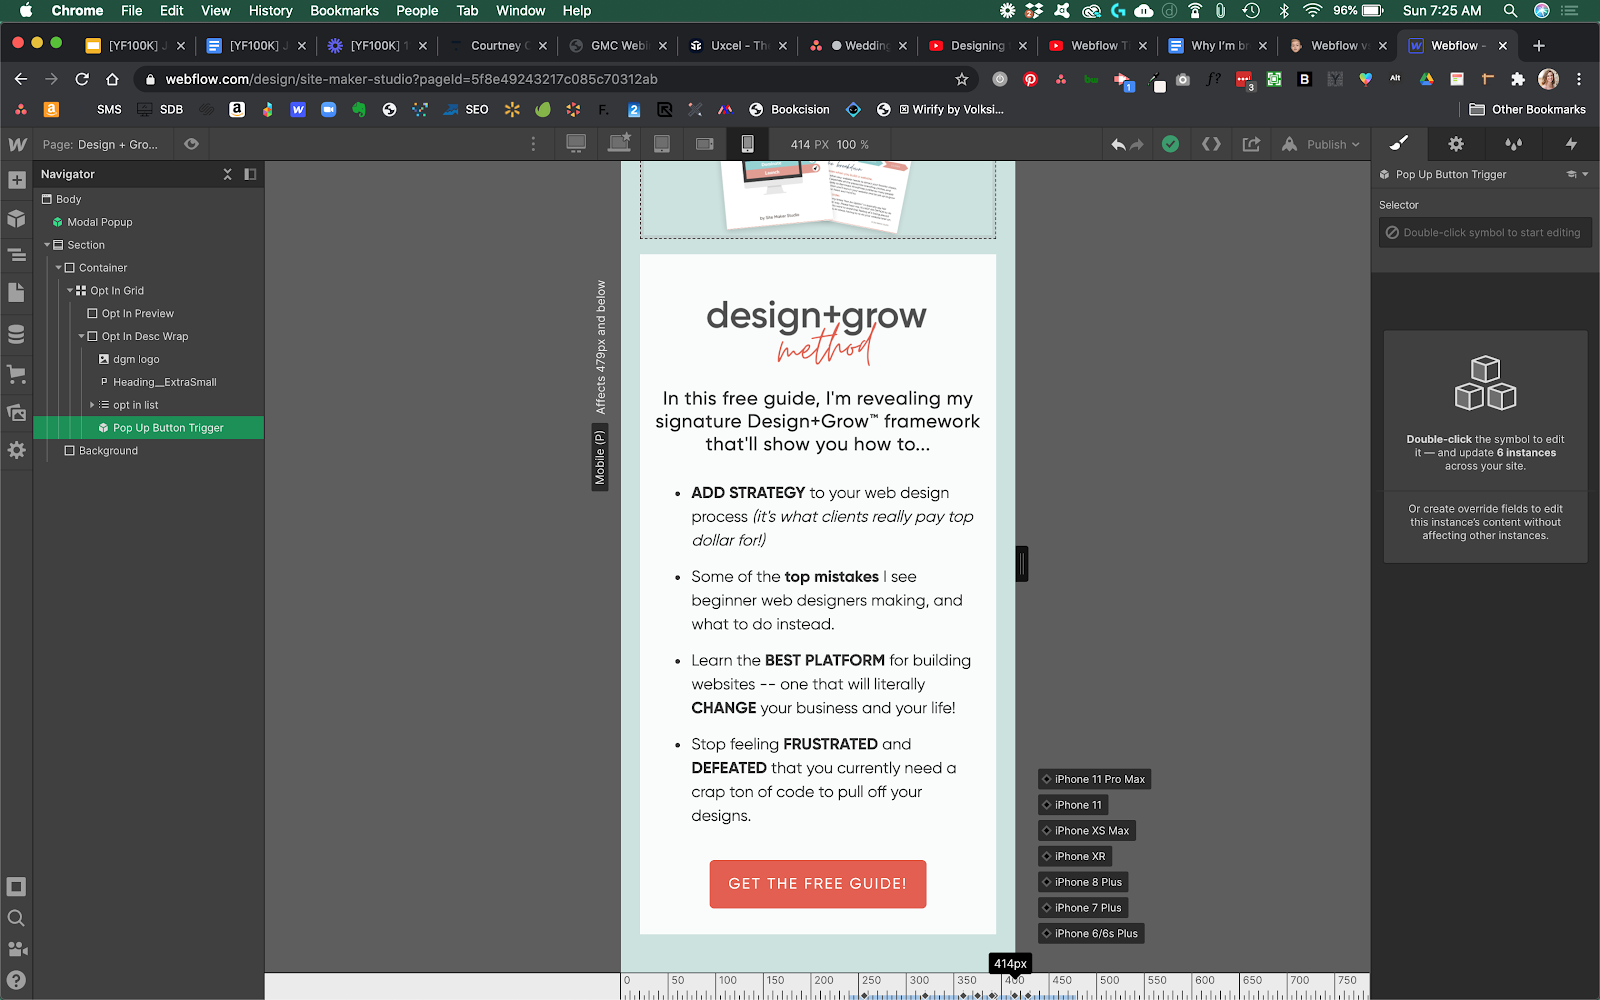 responsive design on webflow design for any device